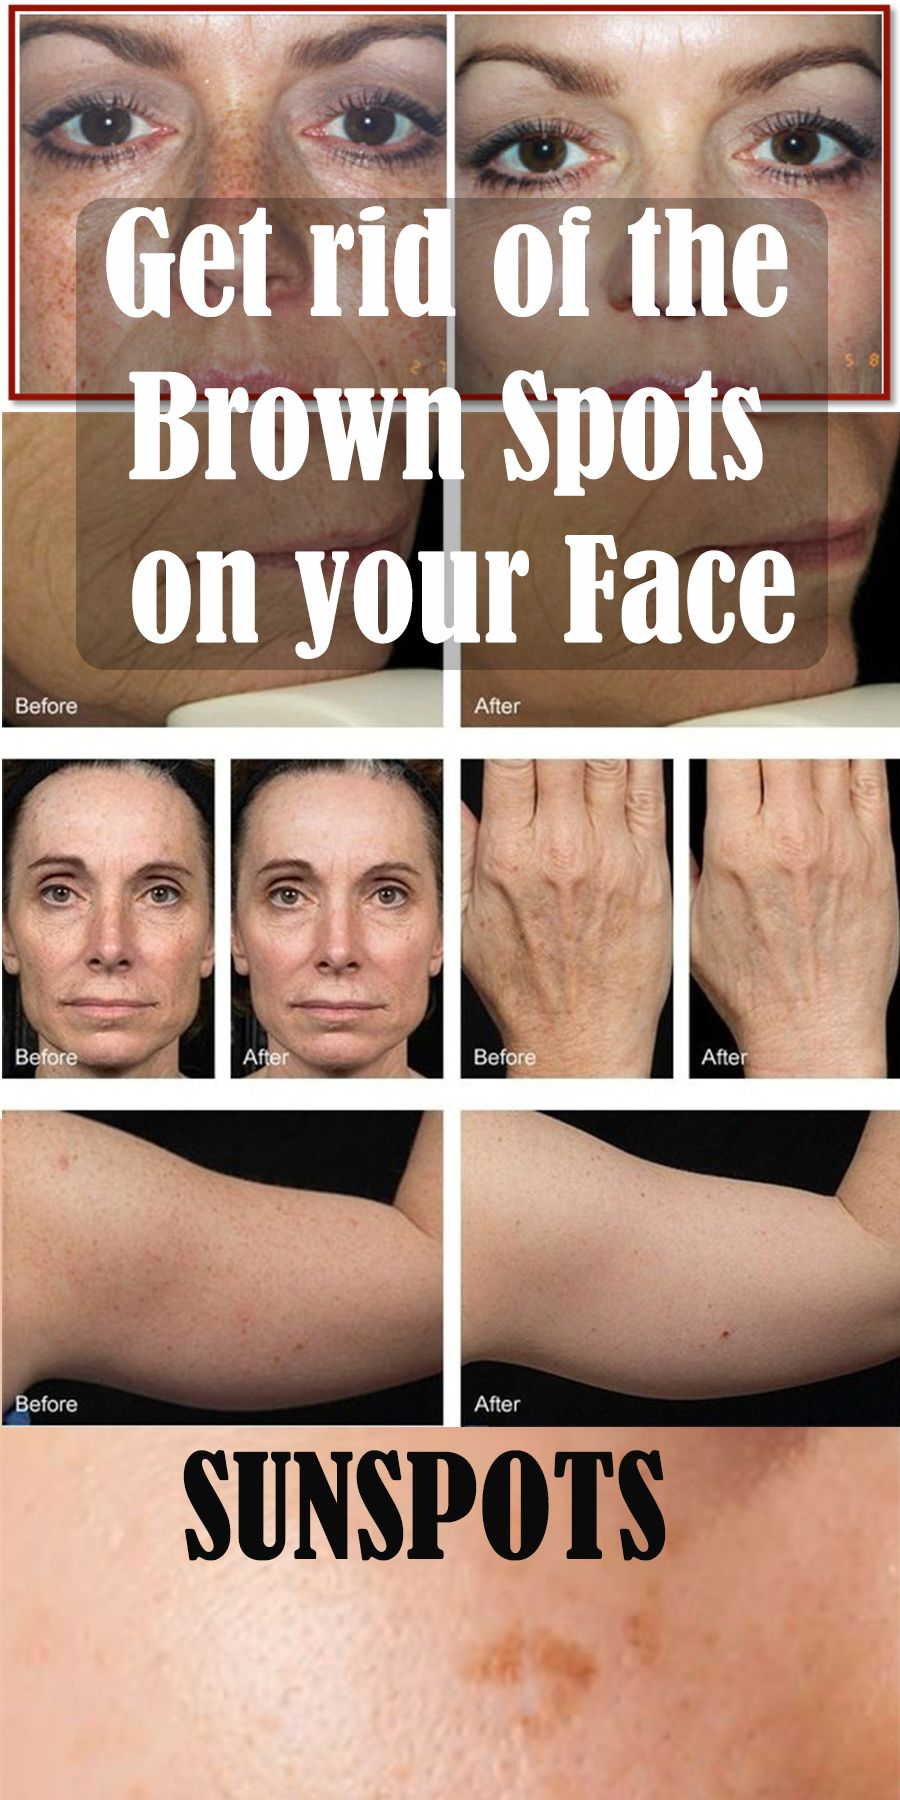 Get rid of the brown spots on your face